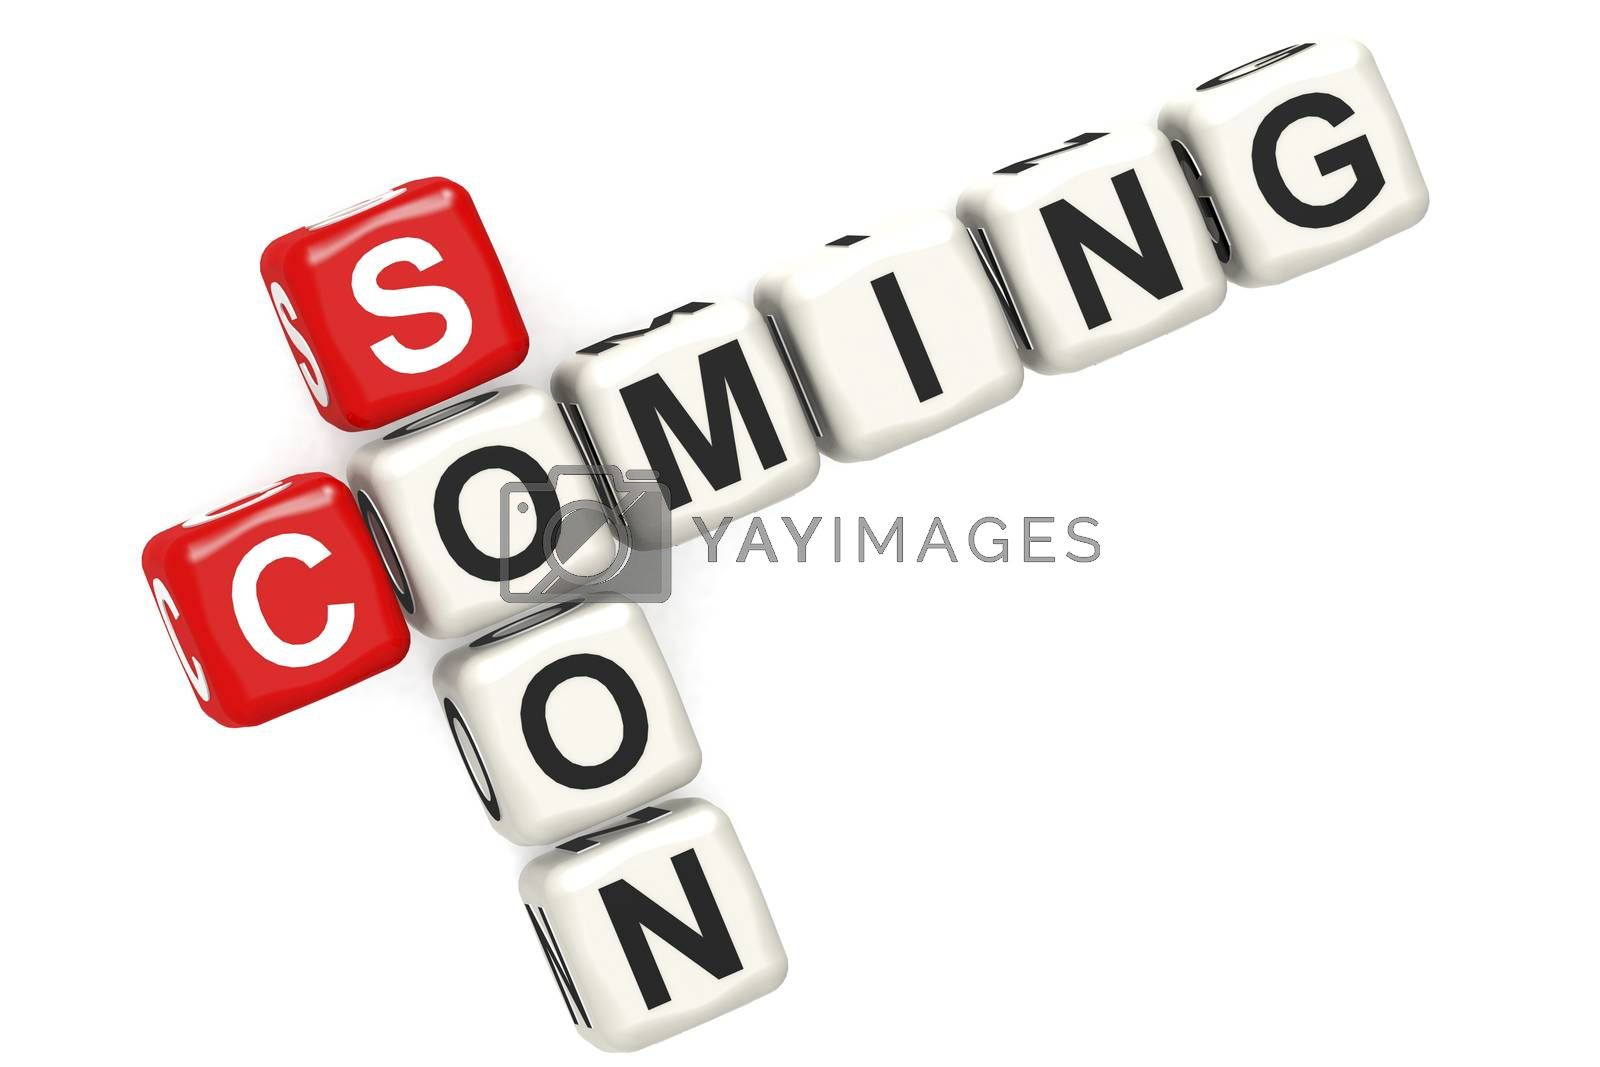 Coming soon cube crossword on white background, 3D rendering